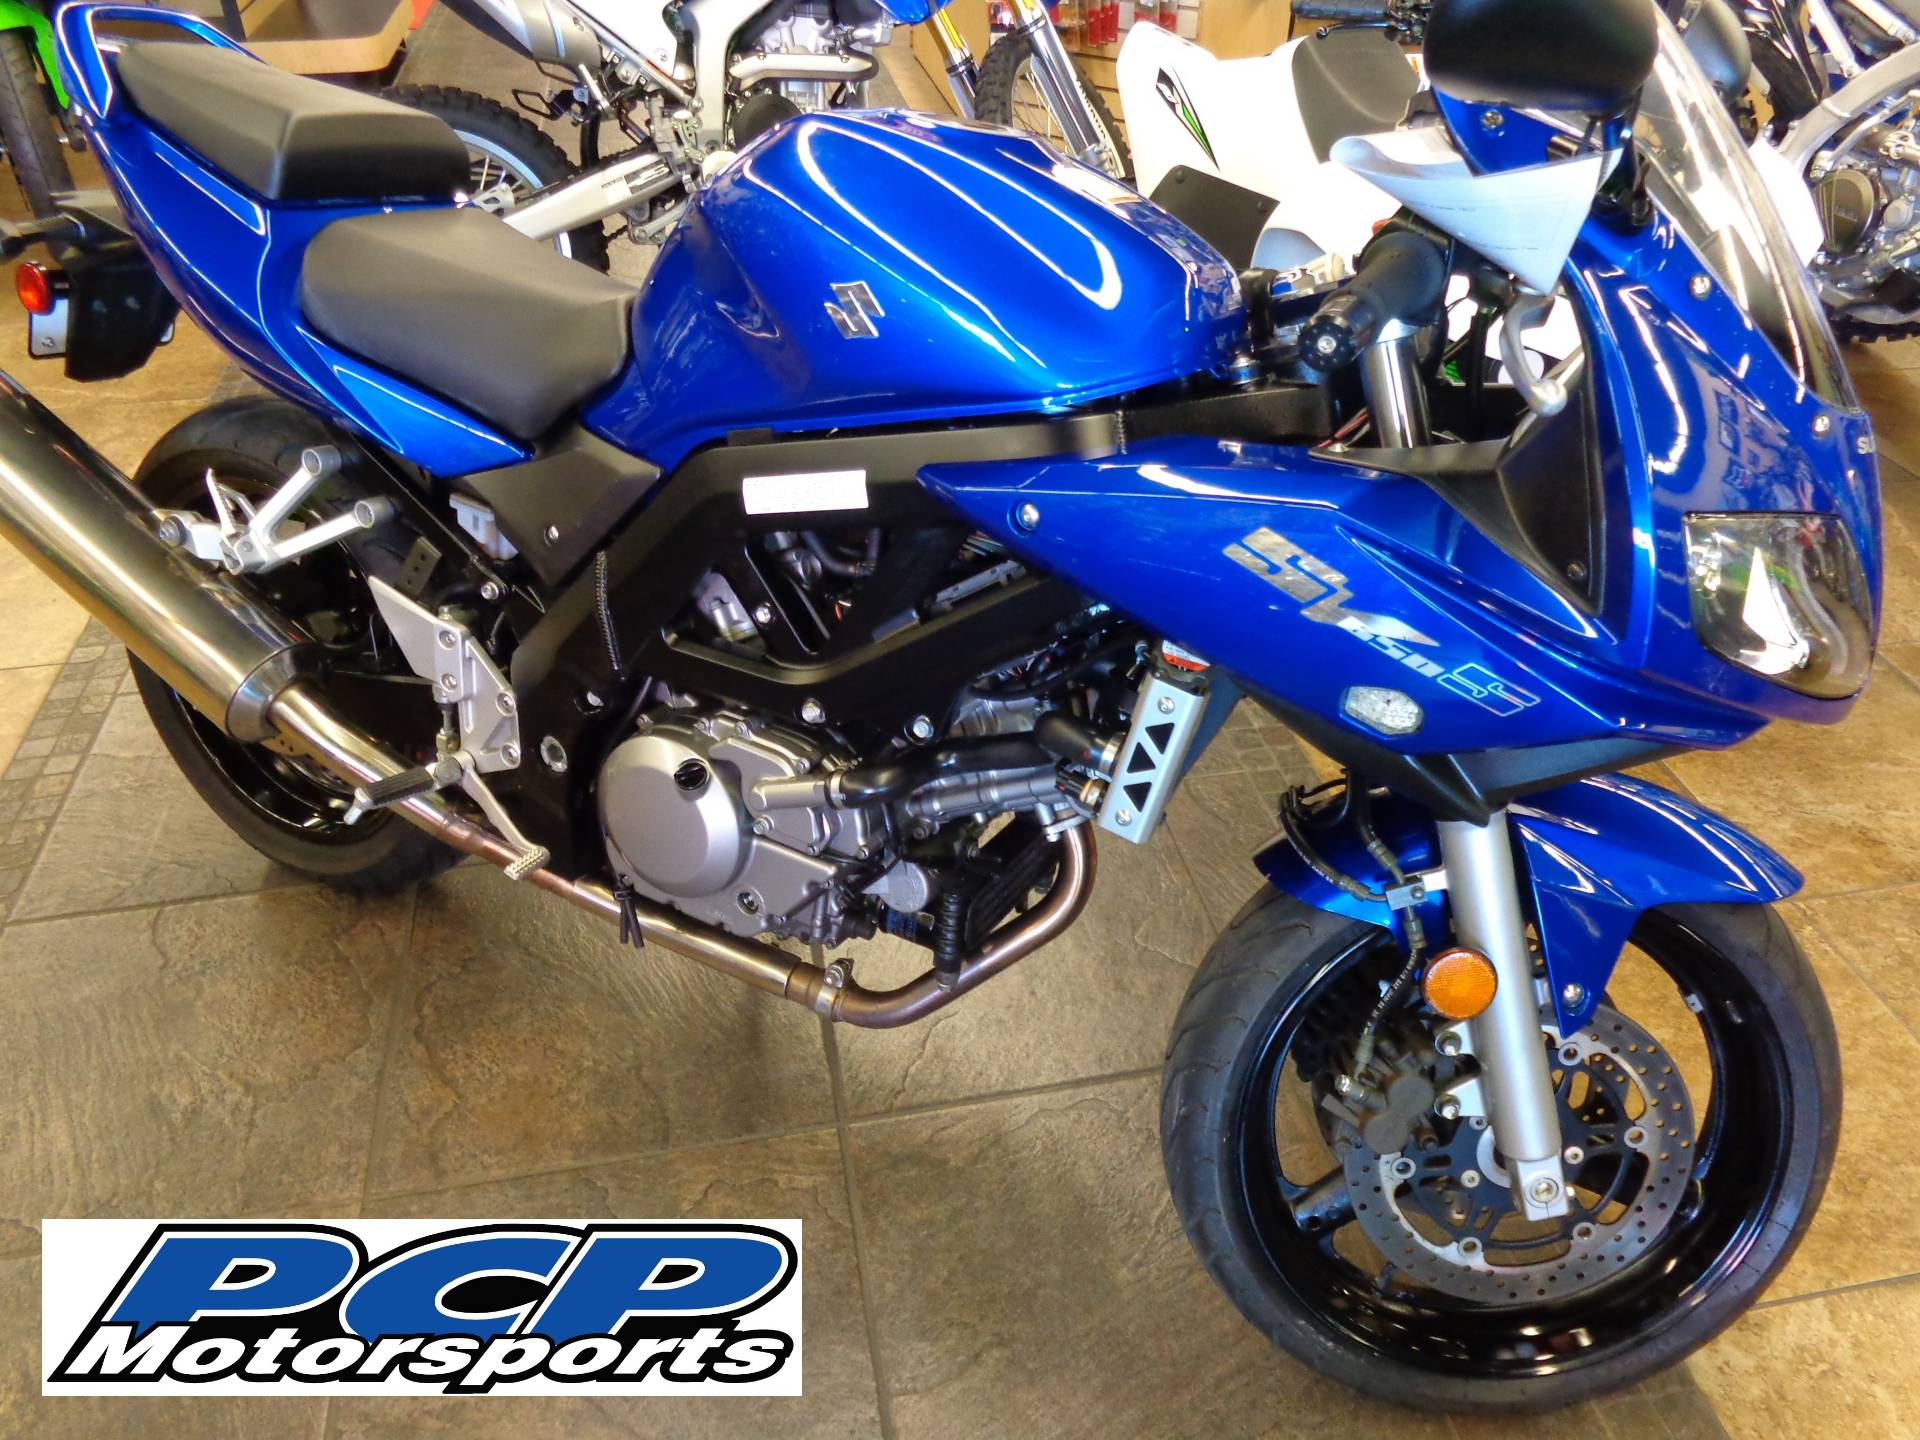 2005 Suzuki SV650S for sale 100330